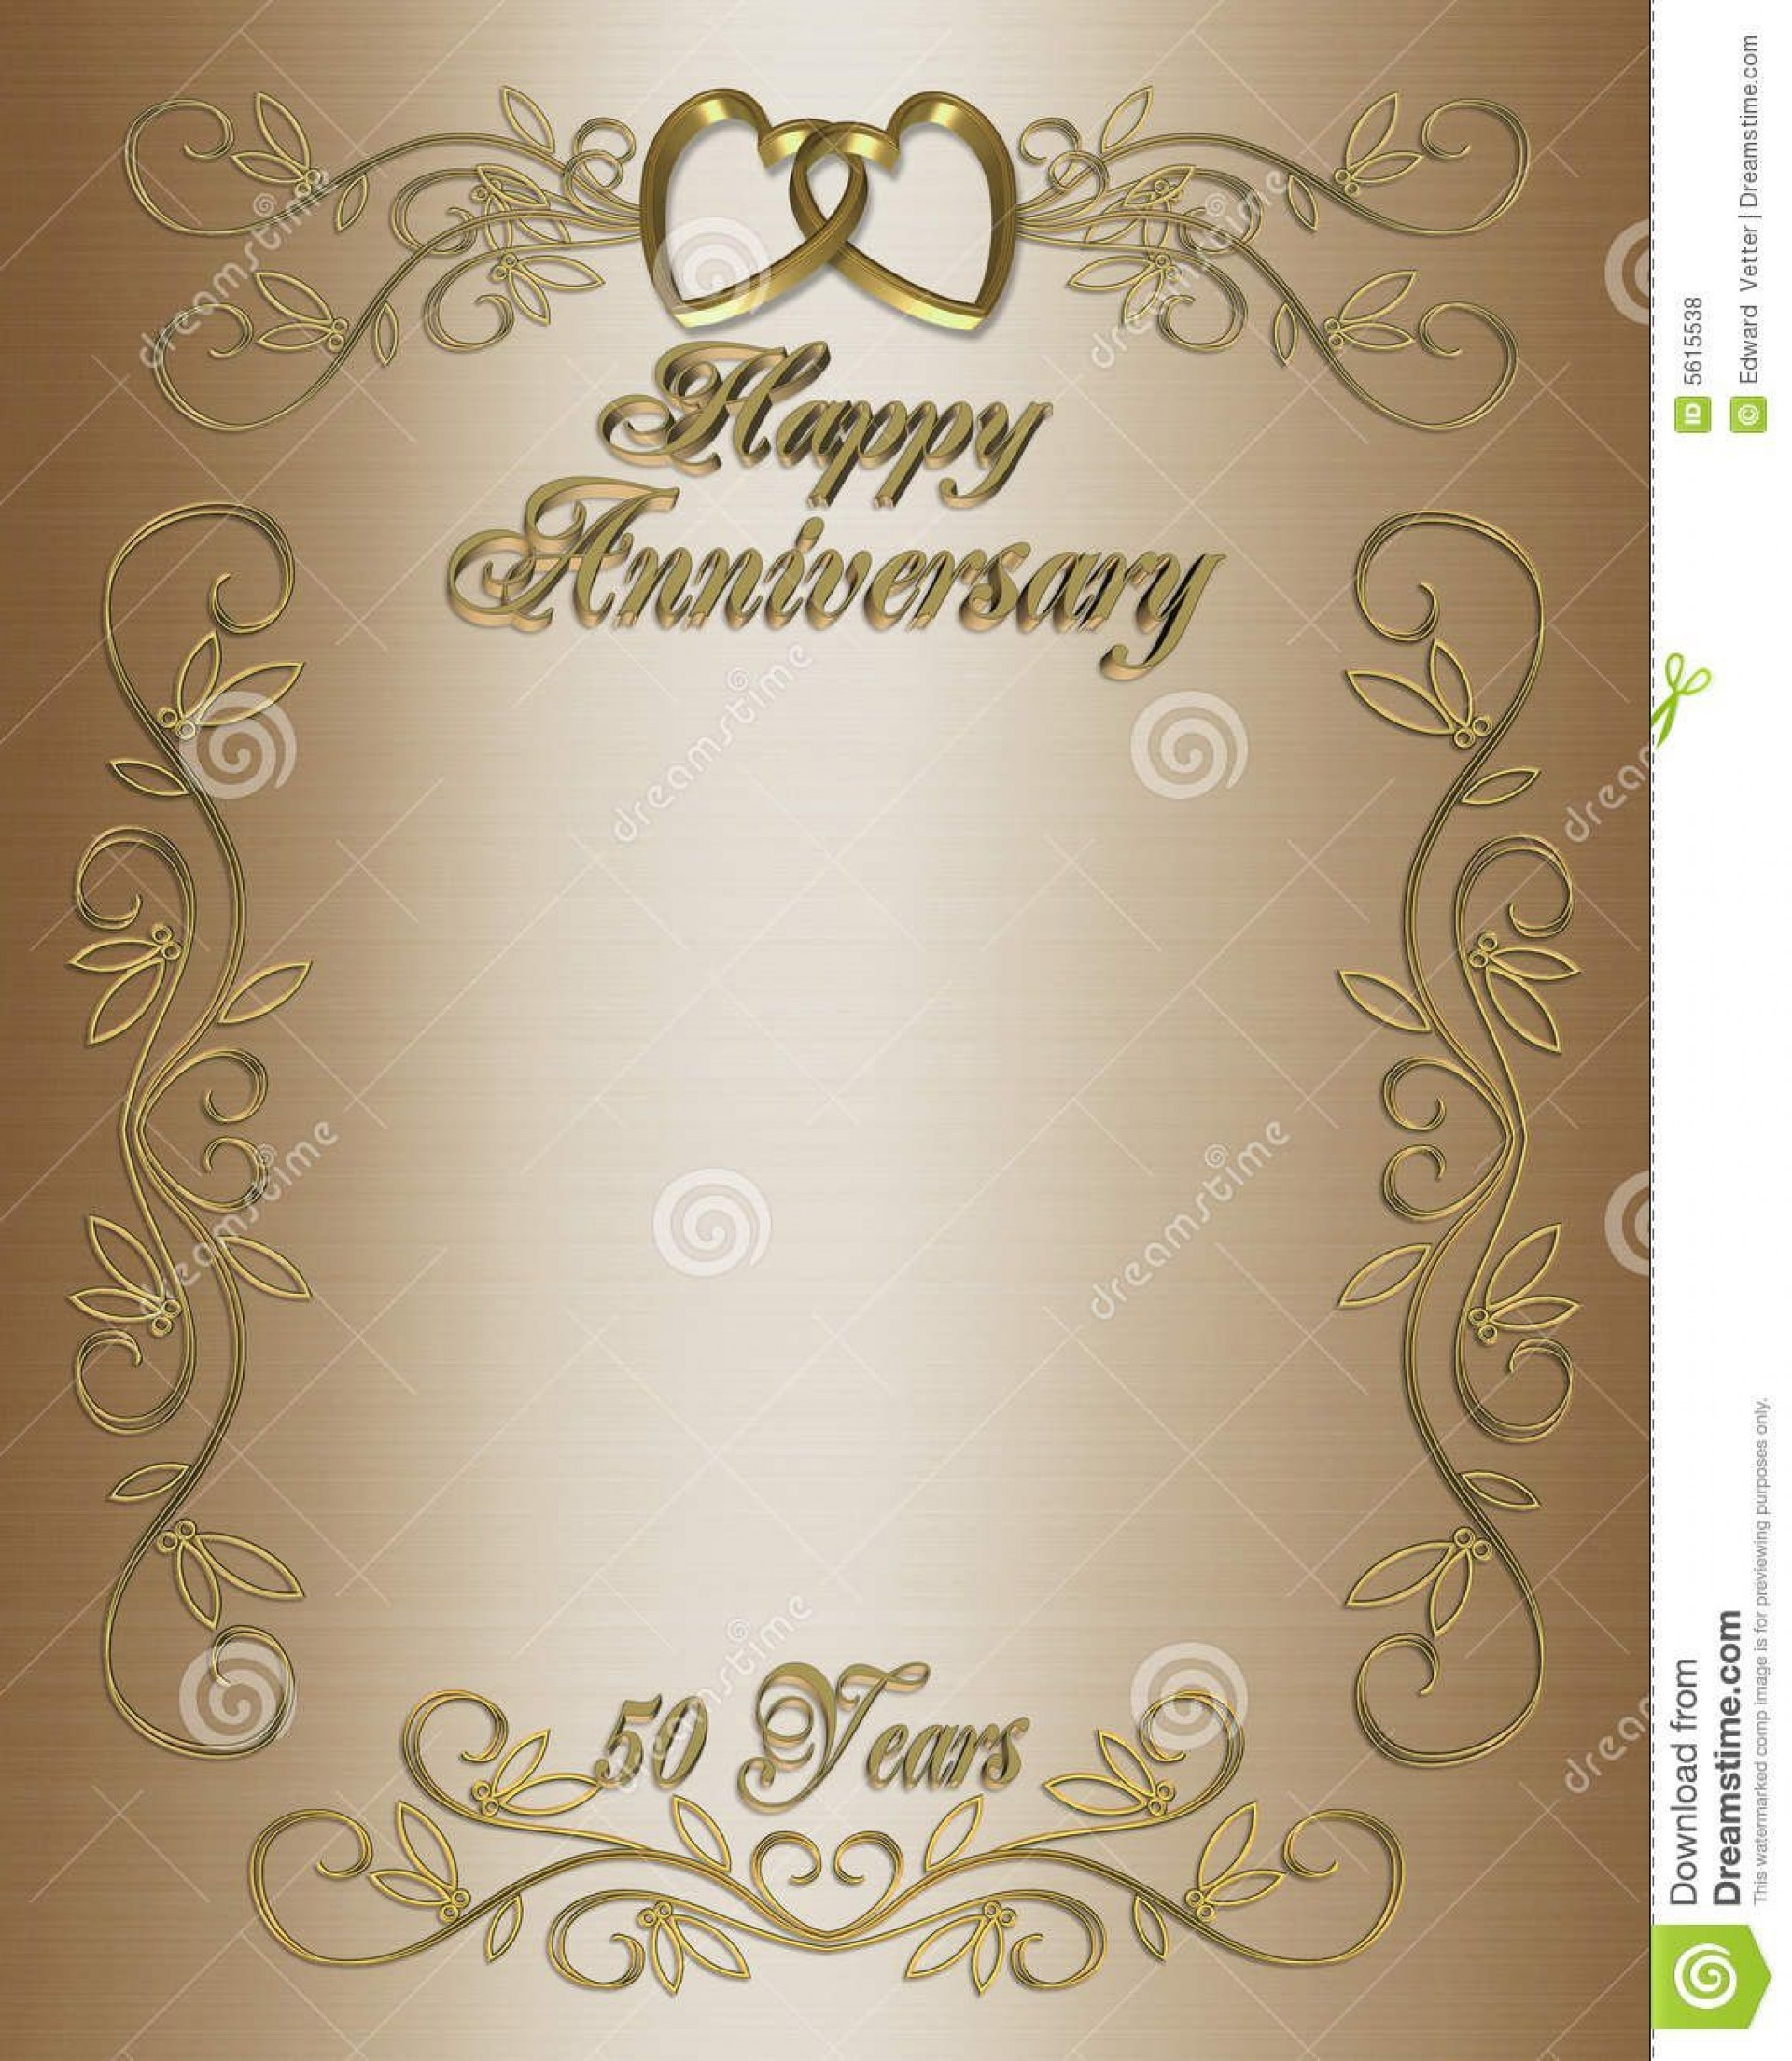 002 Magnificent 50th Anniversary Invitation Template Free Download Highest Quality  Golden Wedding1920